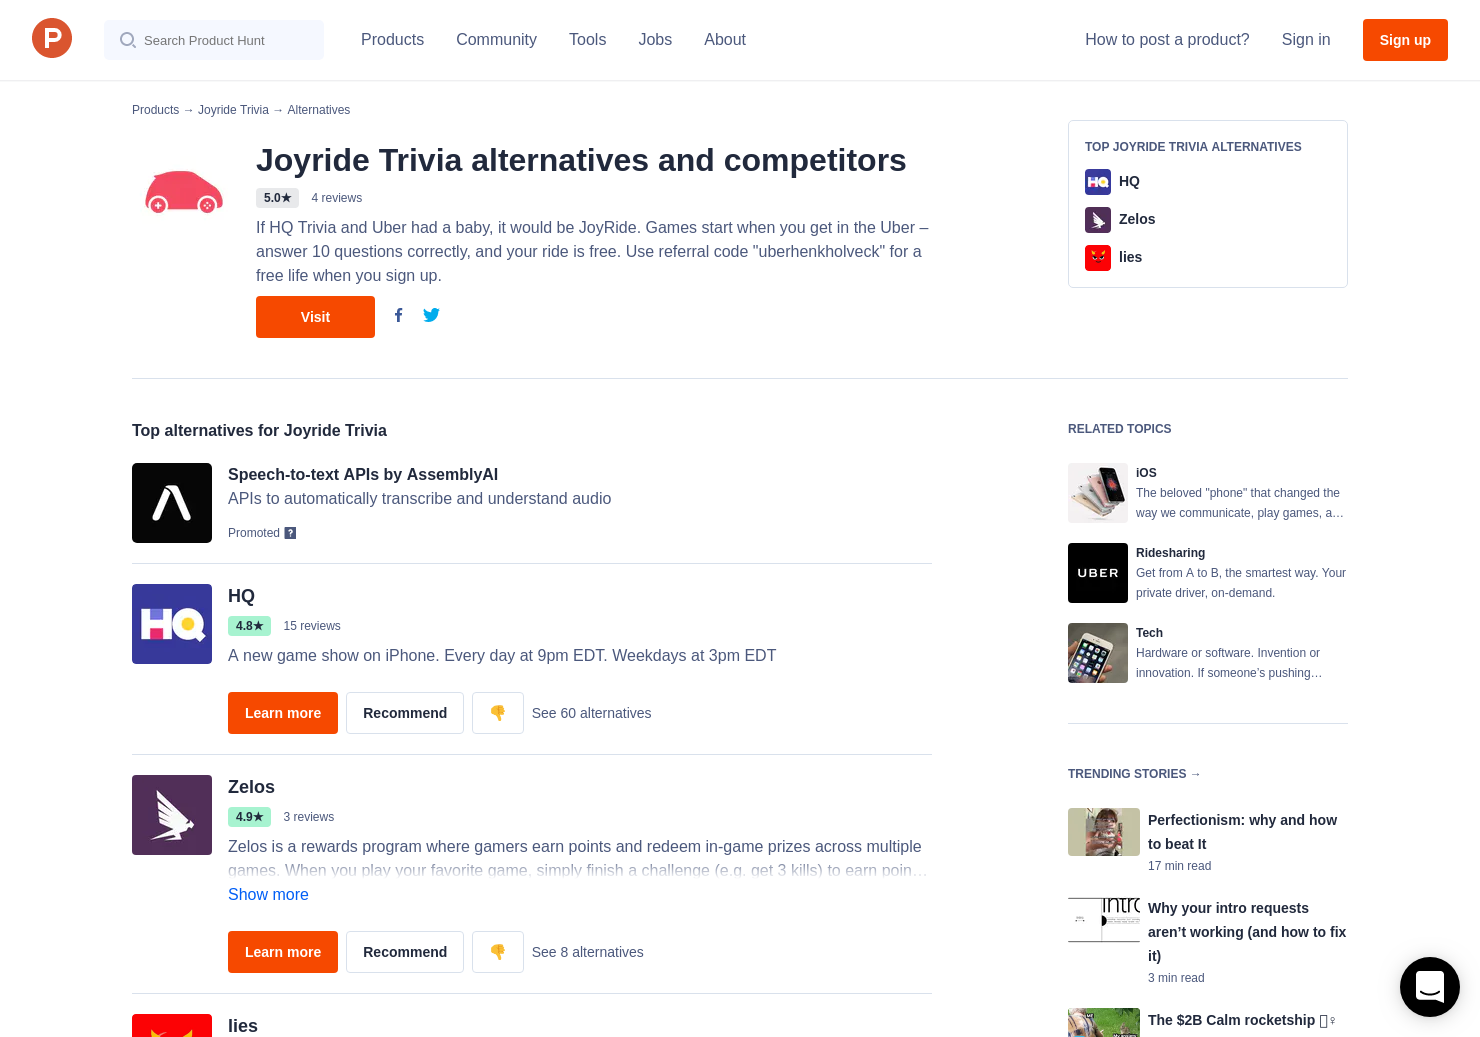 17 Alternatives to Joyride Trivia for iPhone | Product Hunt